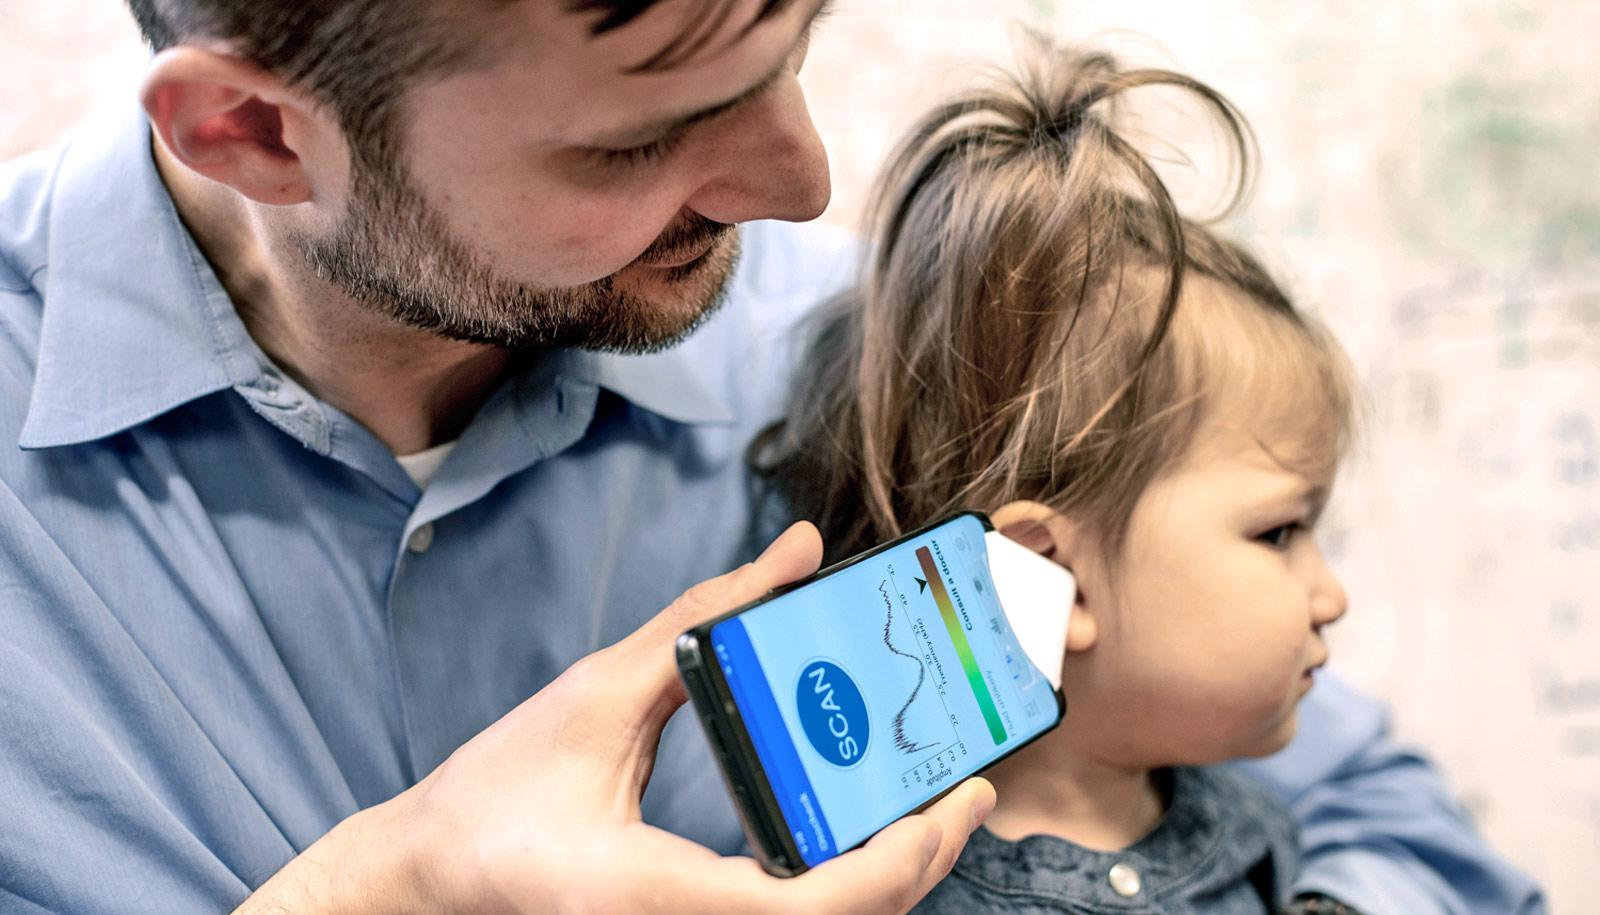 father holds ear infection app on phone to daughter's ear